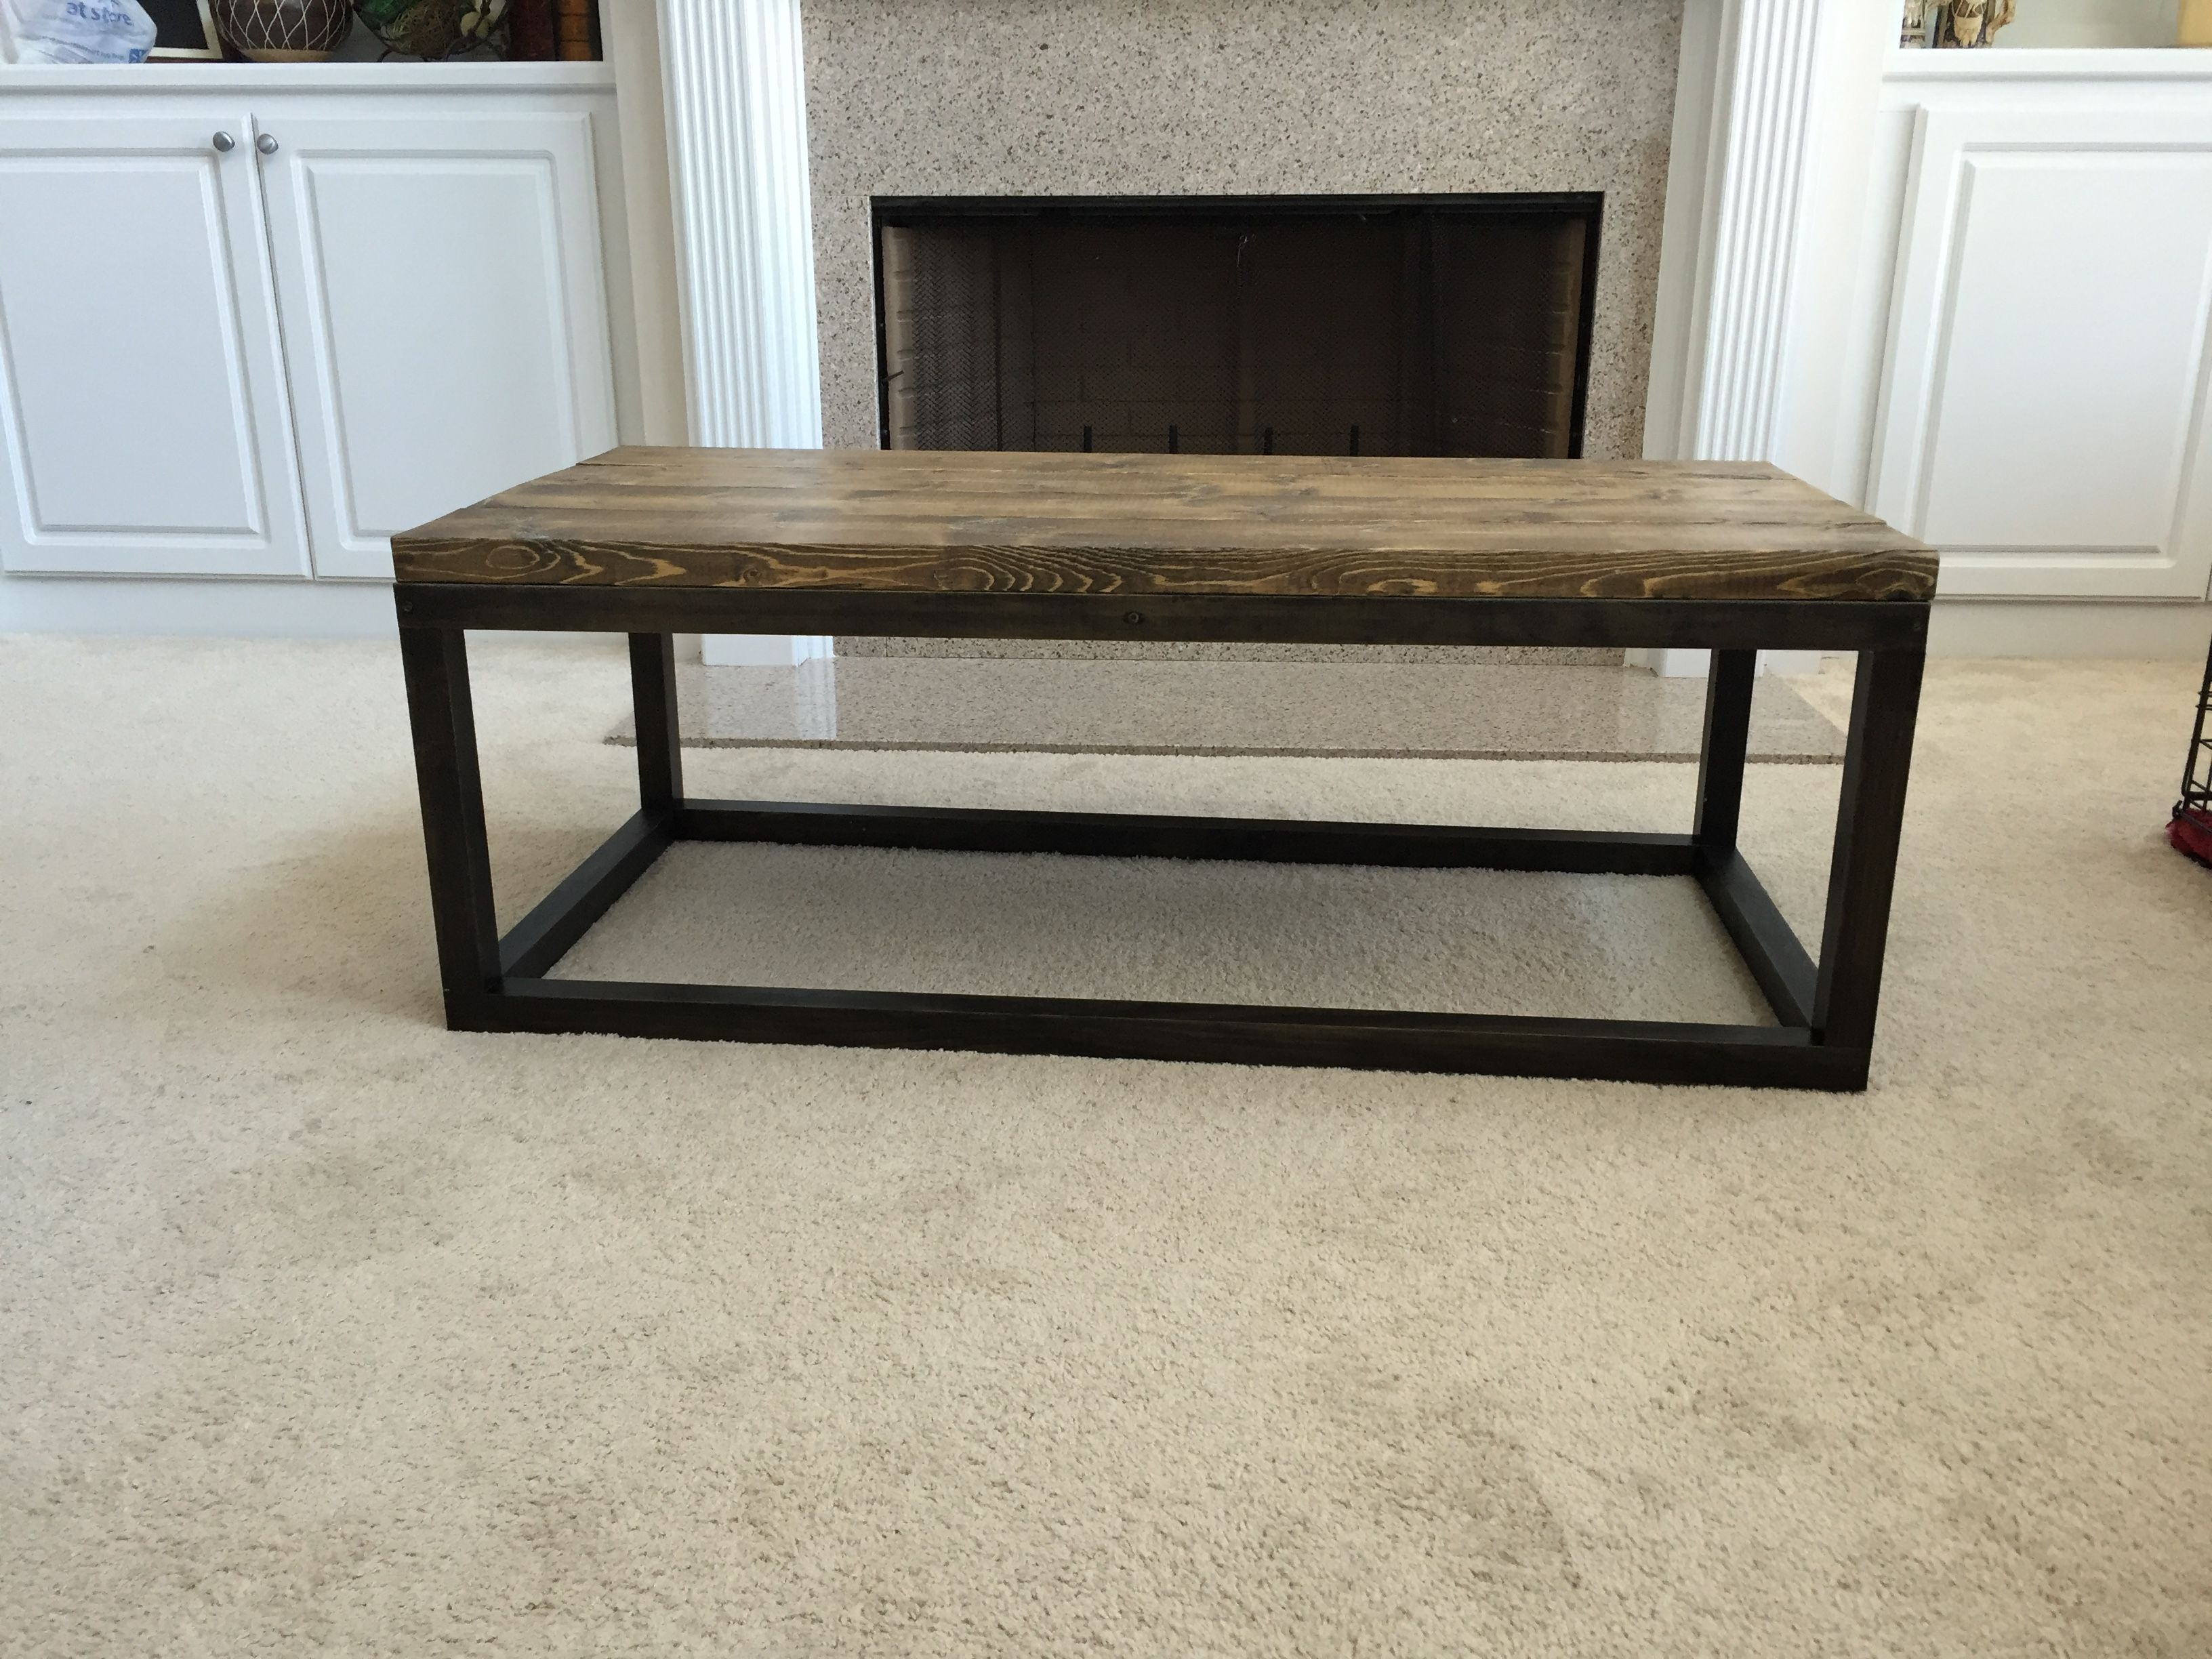 39 Lovely Diy Industrial Coffee Table Ideas On A Budget Coffee